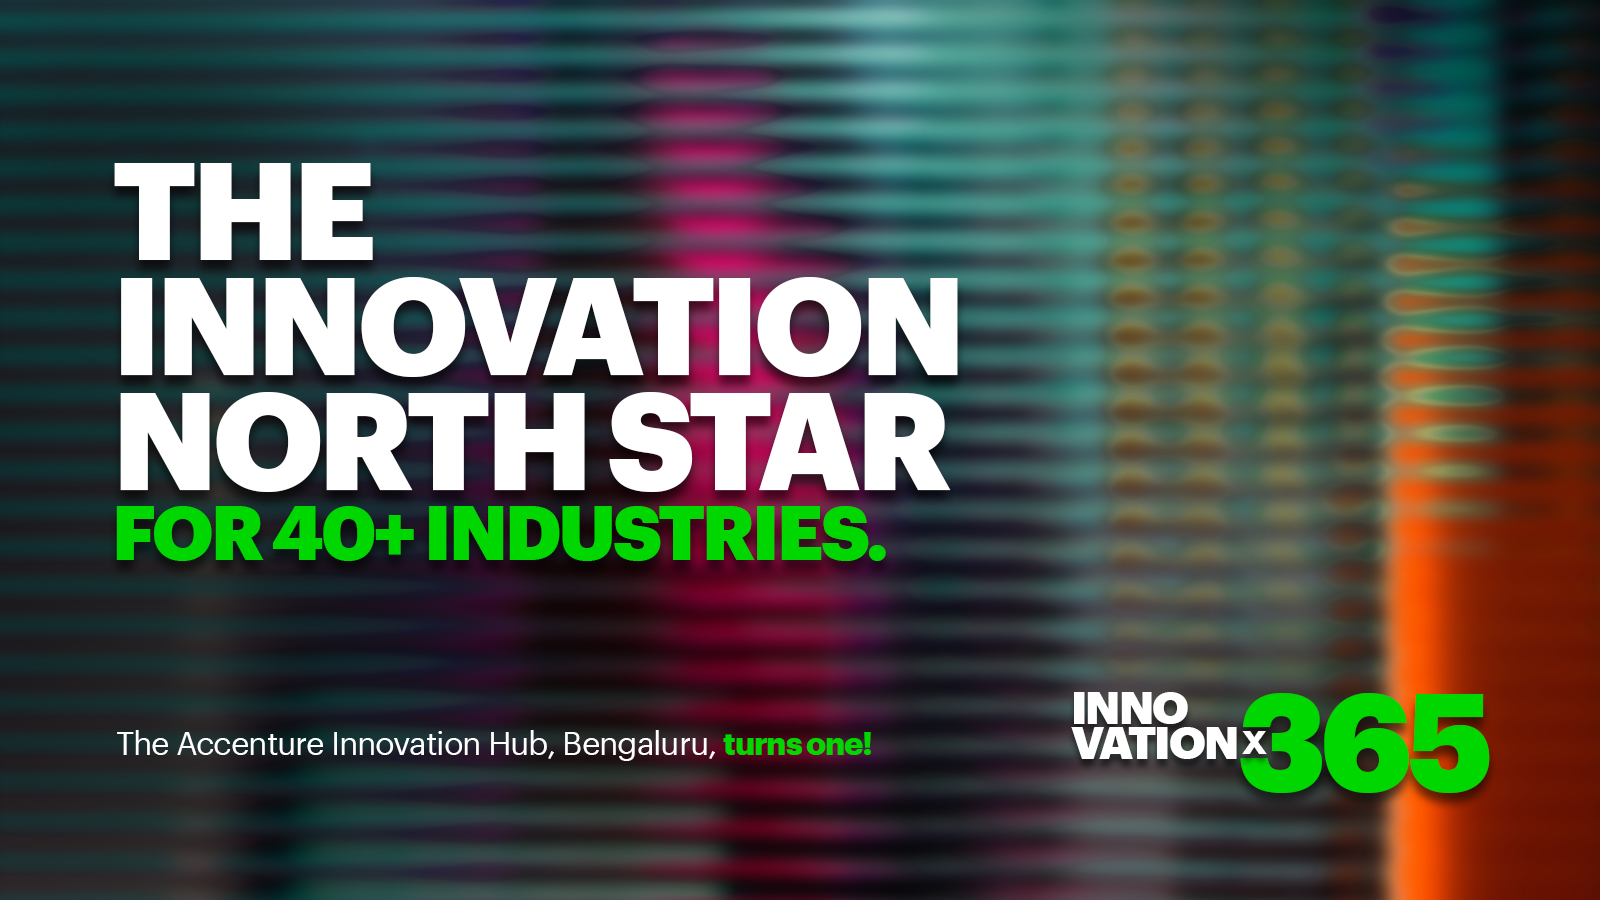 The Innovation North Star for 40+ Industries.